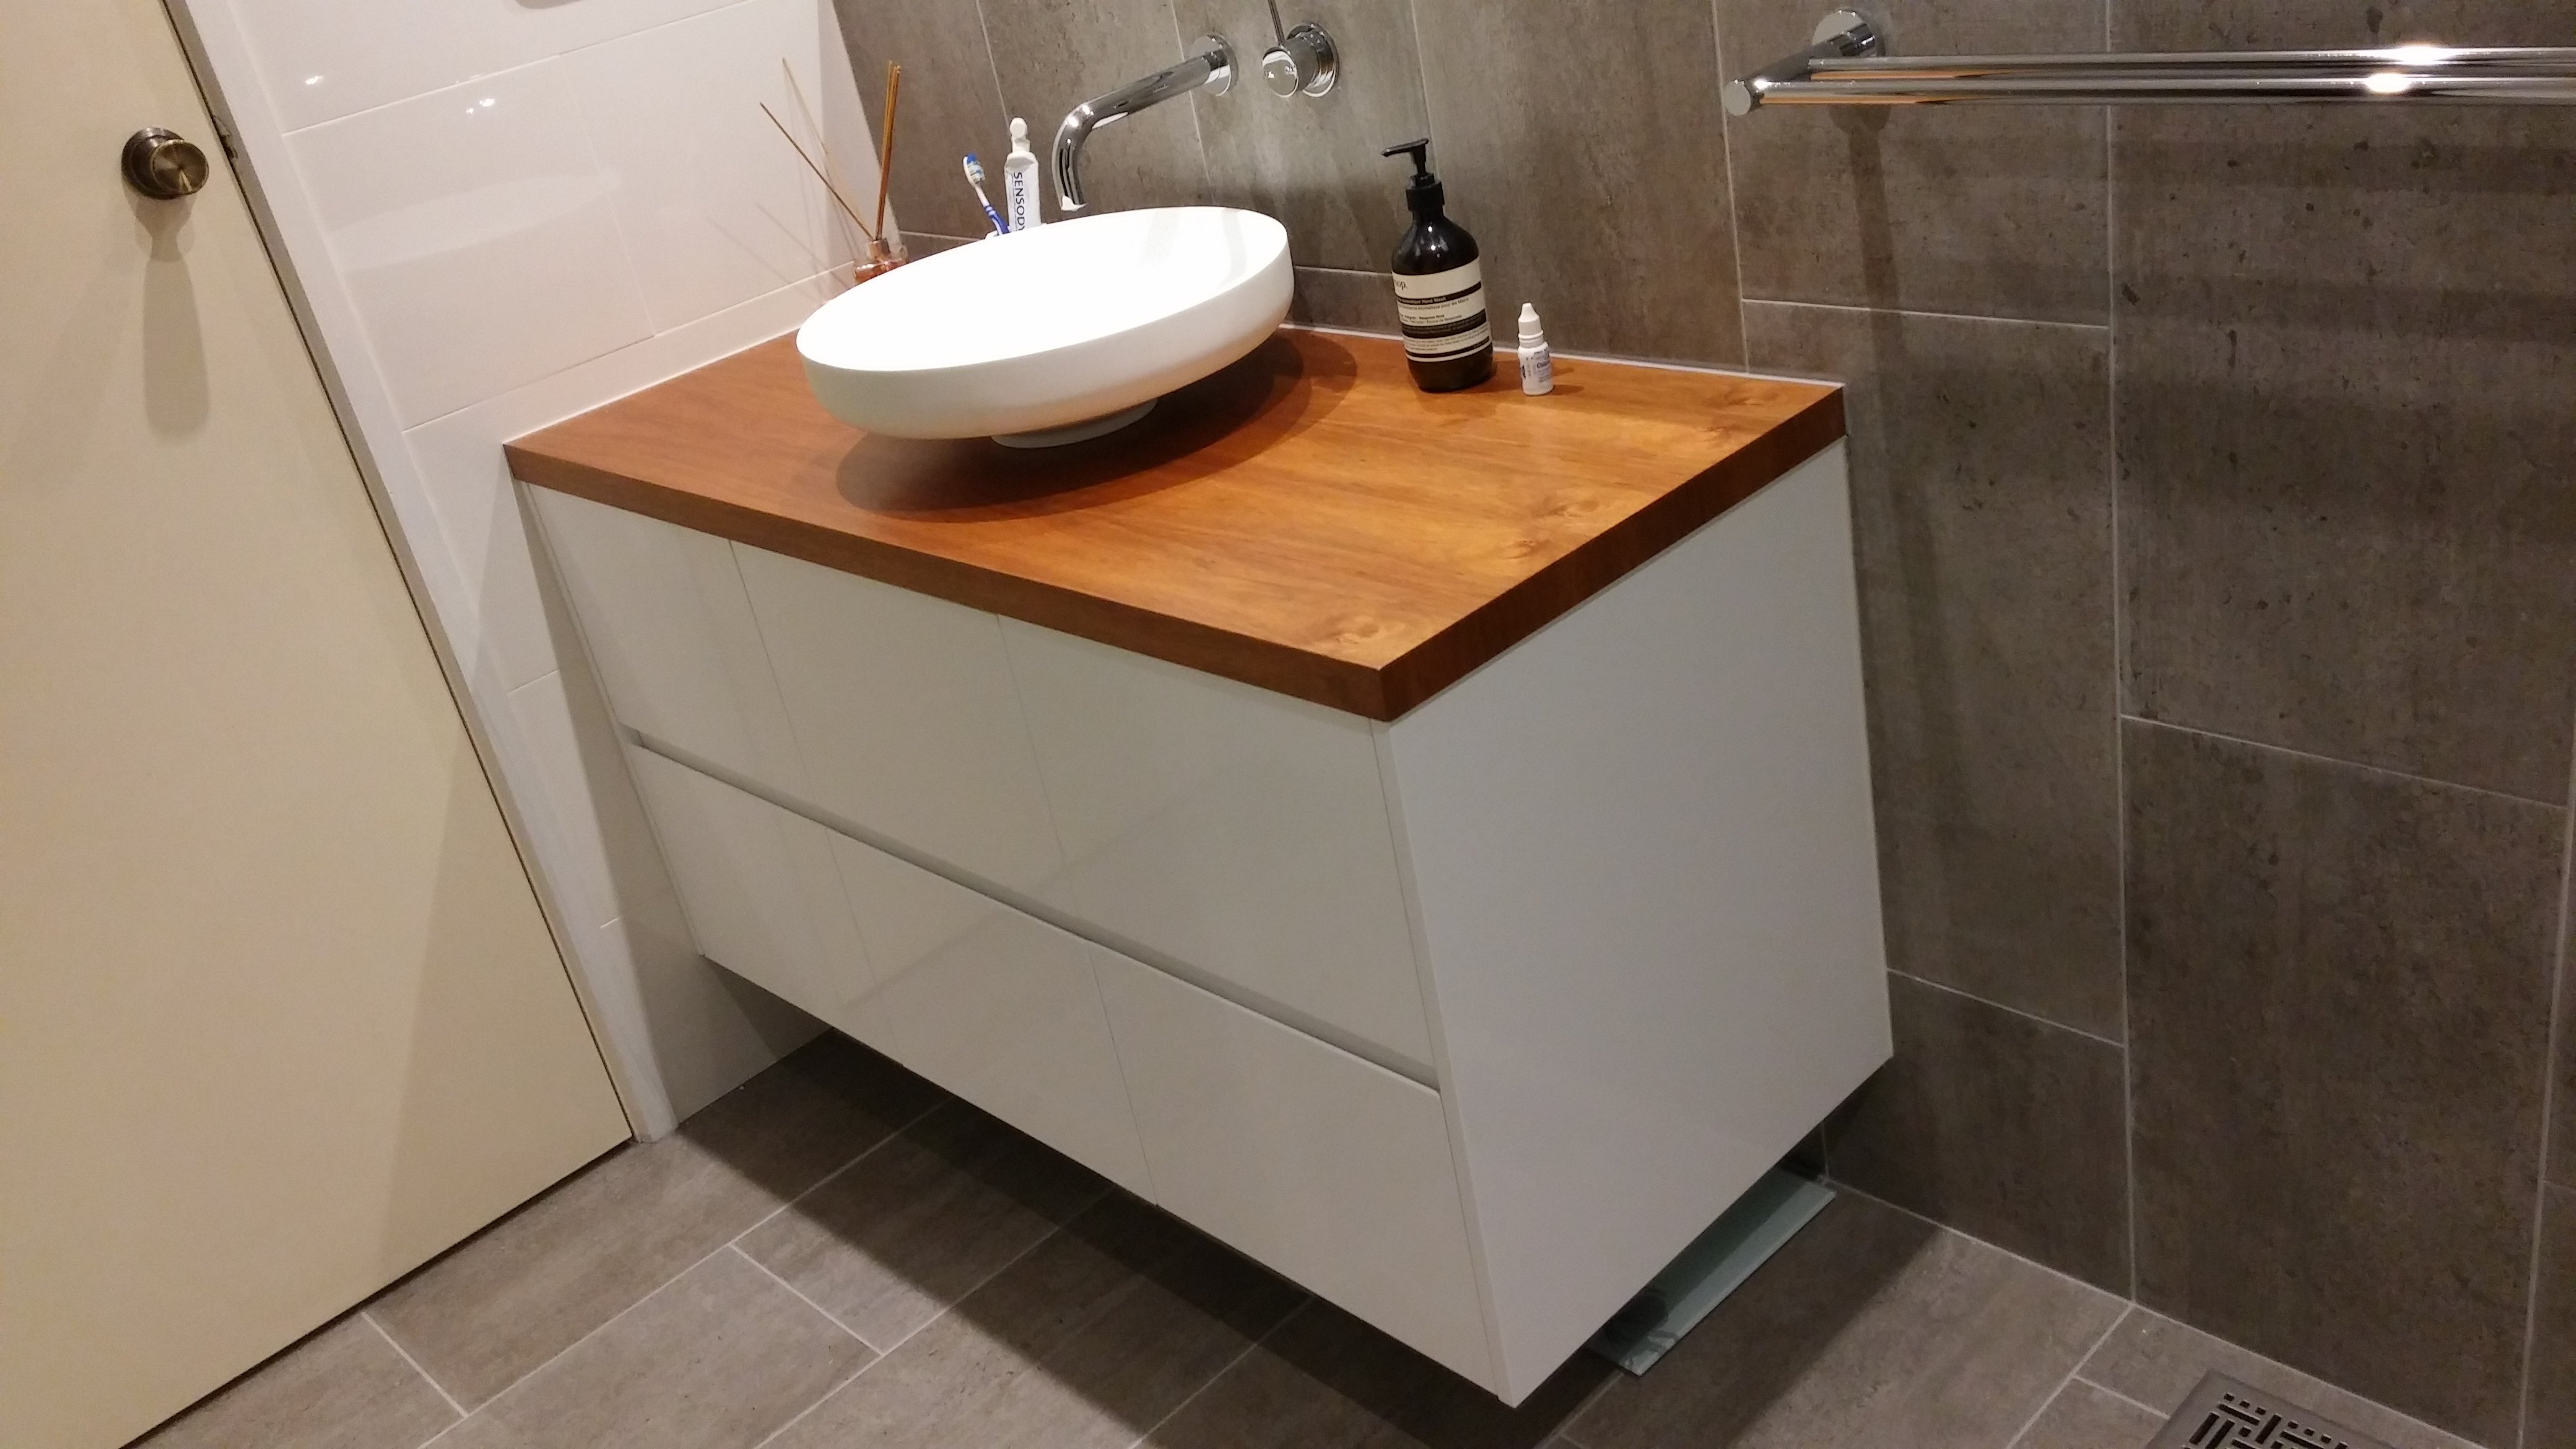 cabinets mount sink and sinks home debuskphoto wall out find bathroom